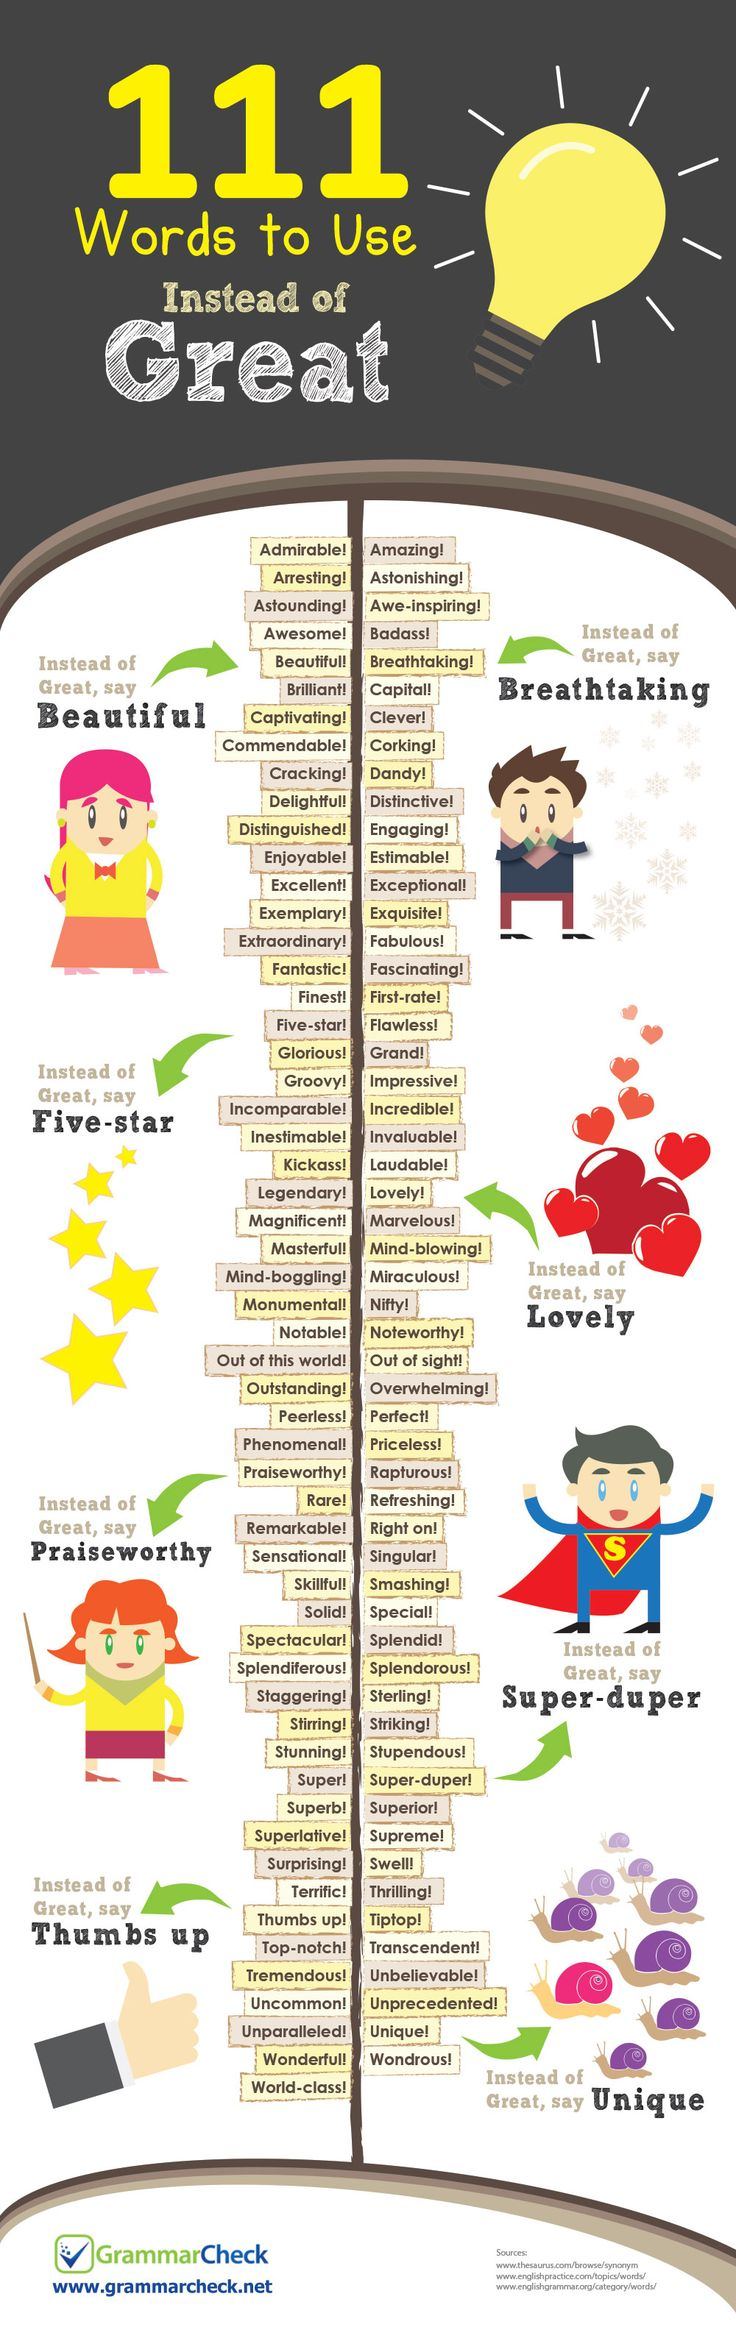 111 Words to Use Instead of Great (Infographic) More